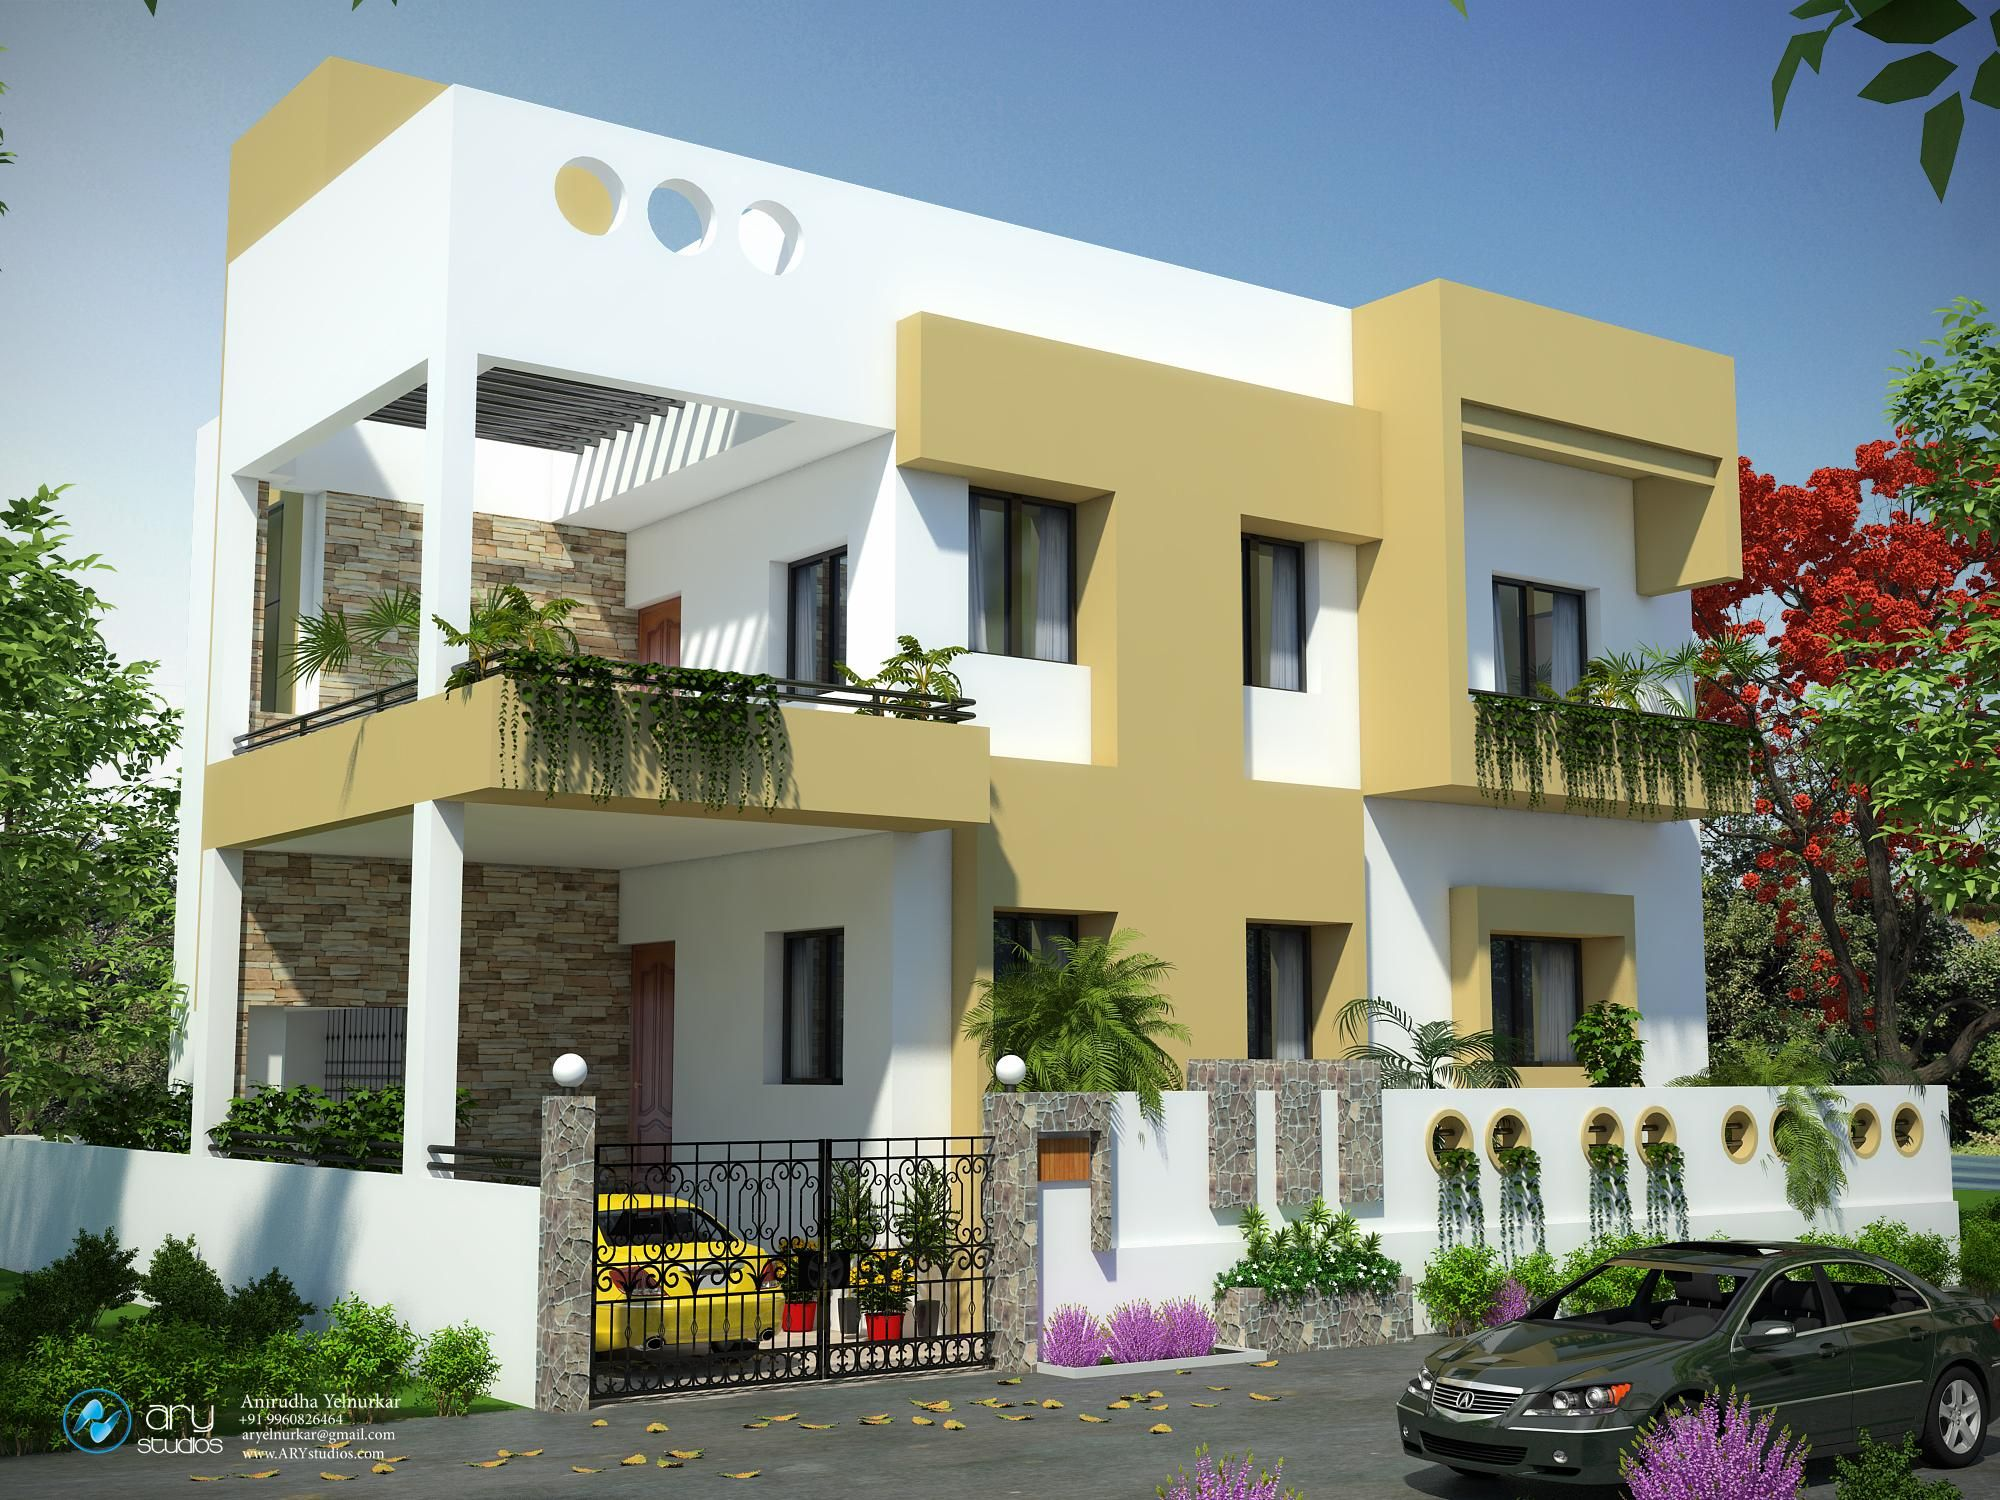 Apartment Building Design Concepts indian residential building designs apartment elev | interior